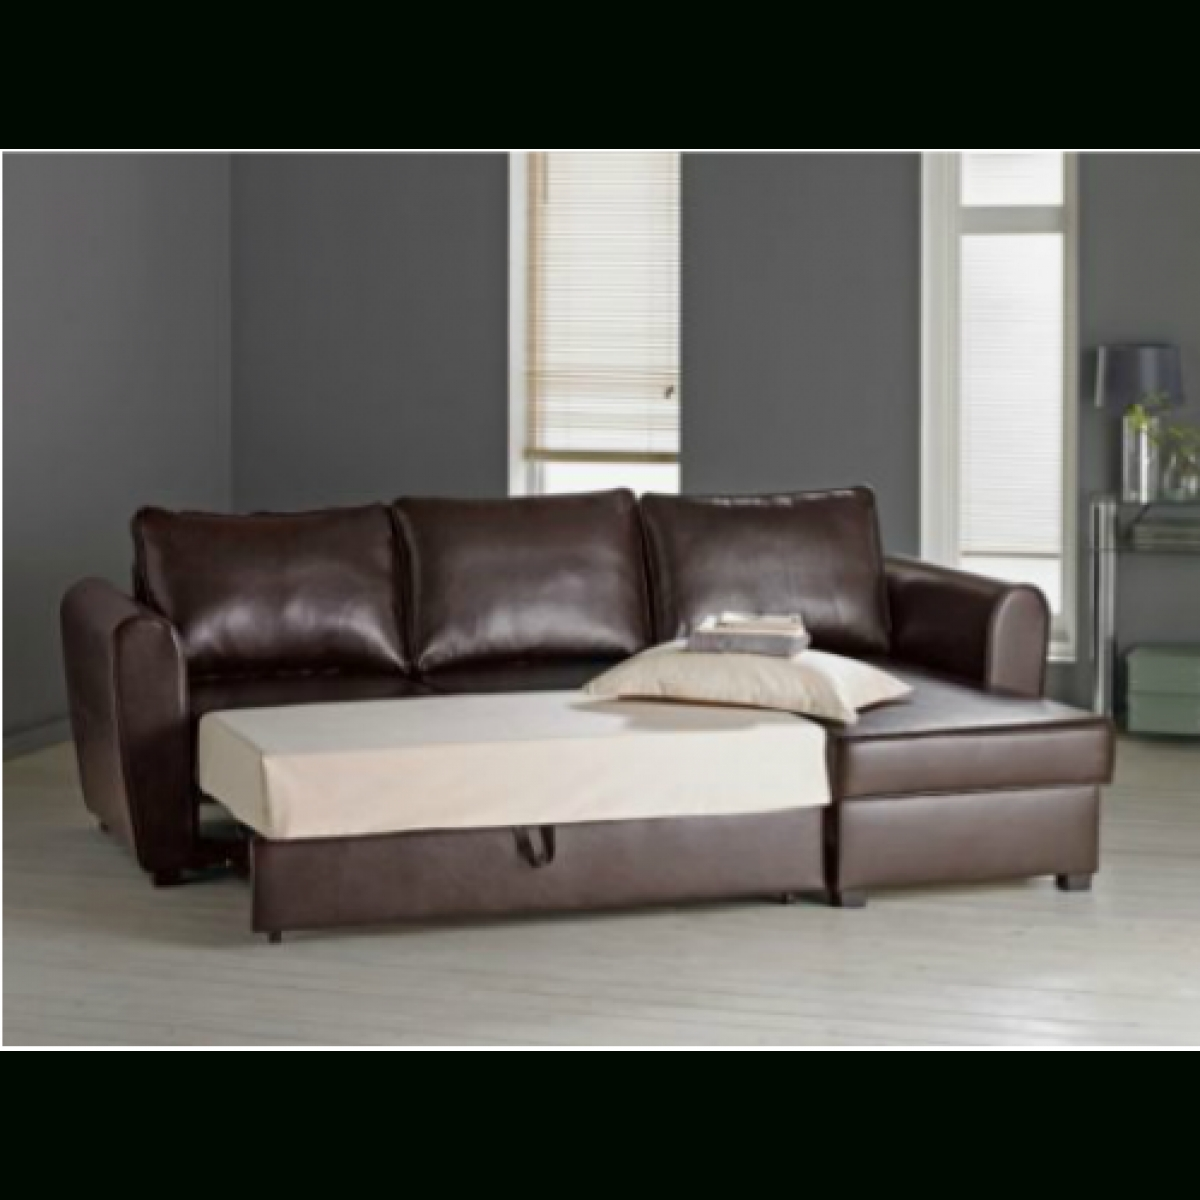 New Siena Fabric Corner Sofa Bed With Storage - Charcoal intended for Fabric Corner Sofa Bed